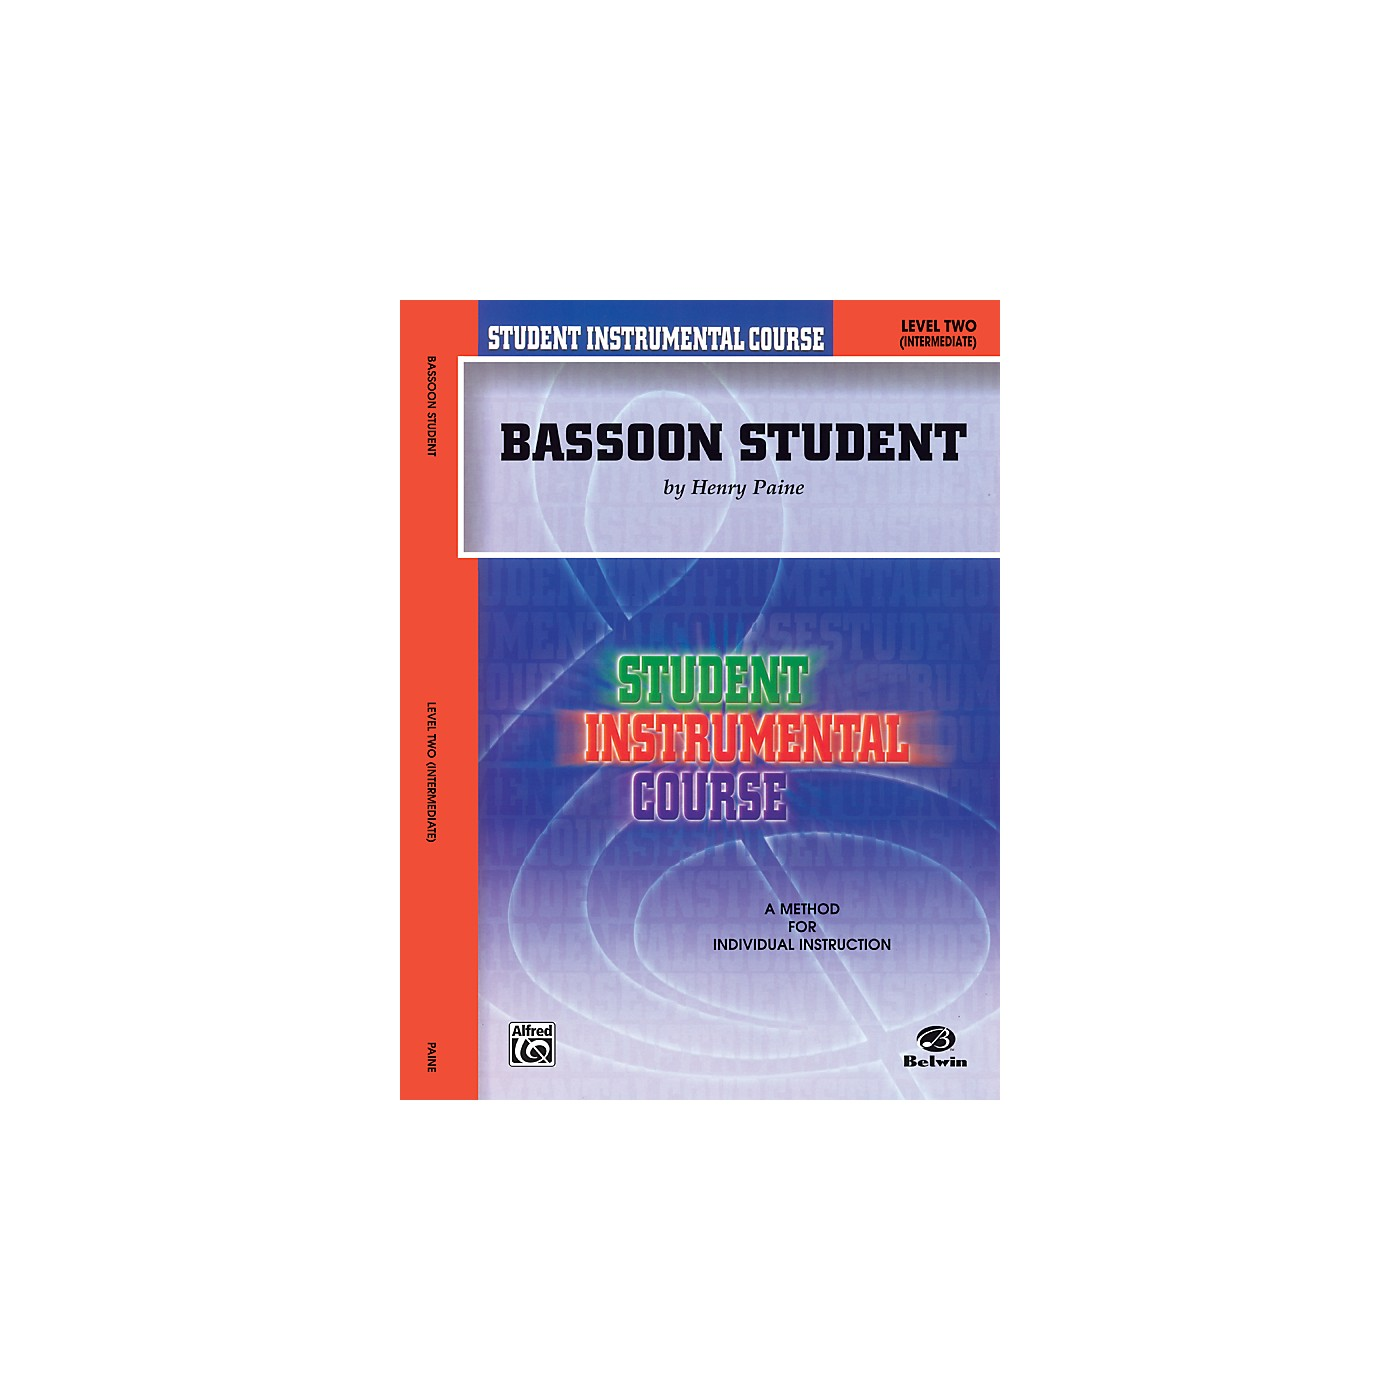 Alfred Student Instrumental Course Bassoon Student Level 2 Book thumbnail